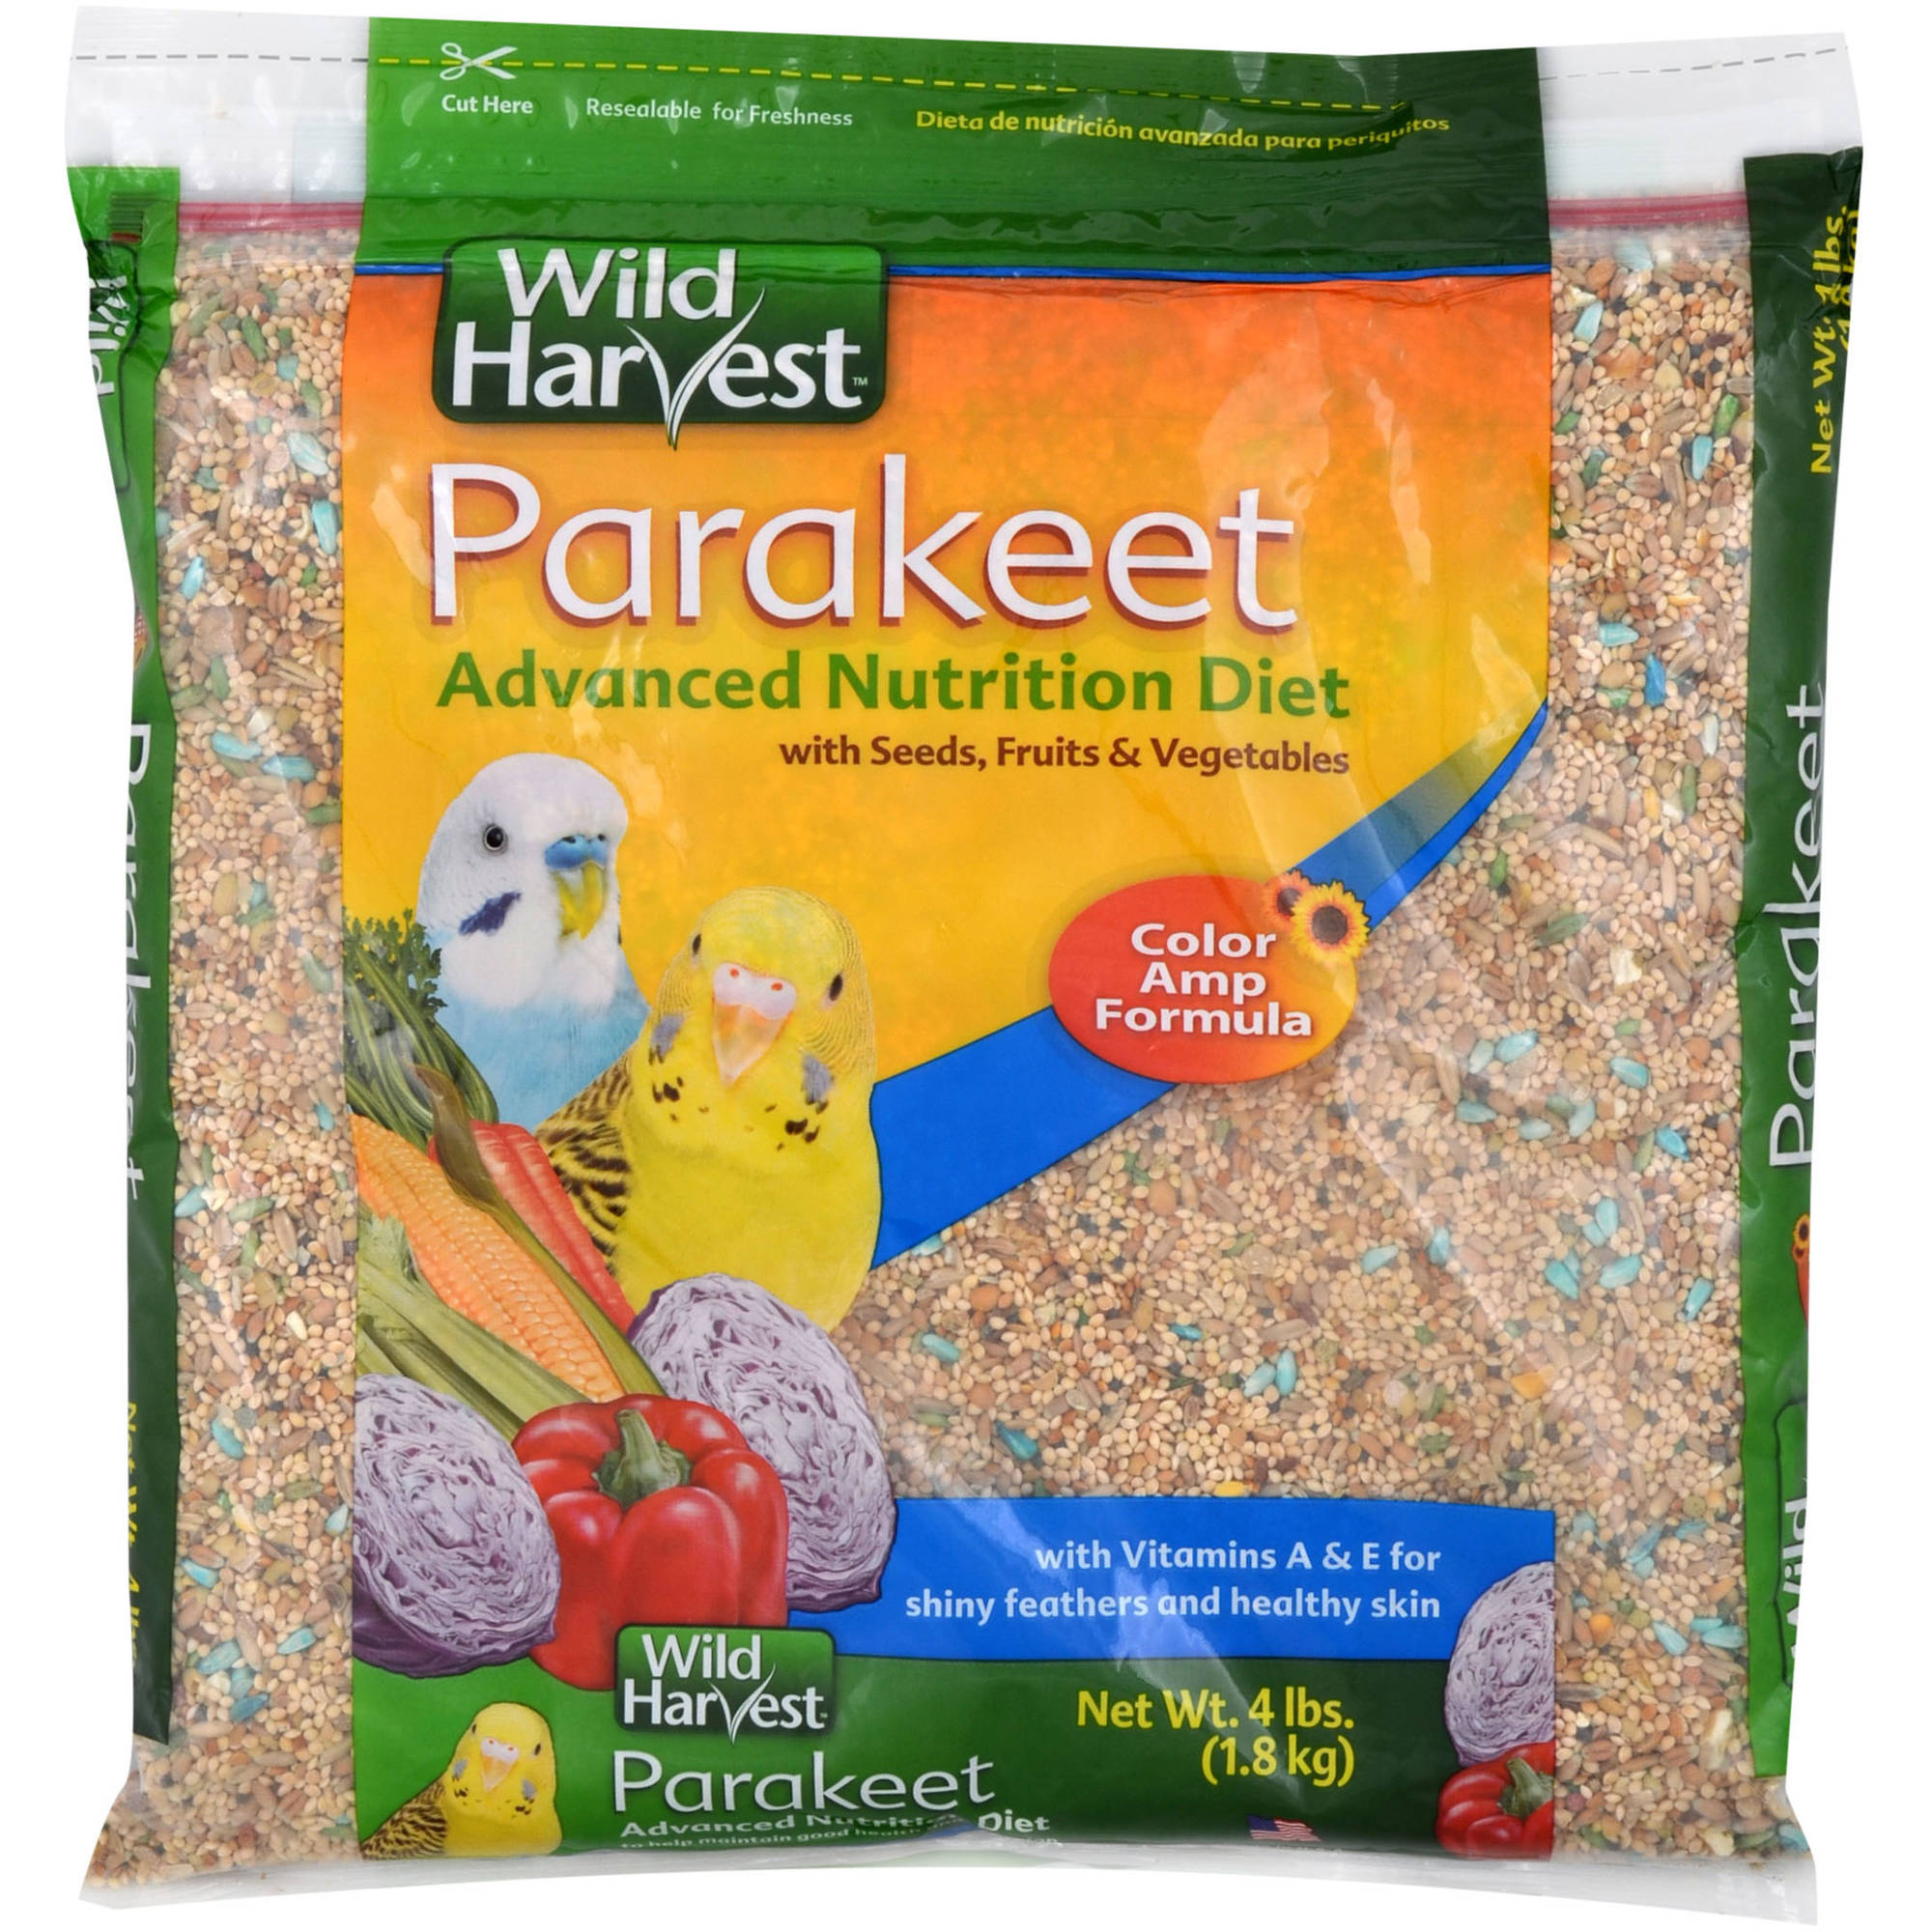 8In1 Pet Products: Super Premium Wild Harvest Parakeet Food, 4 Lb